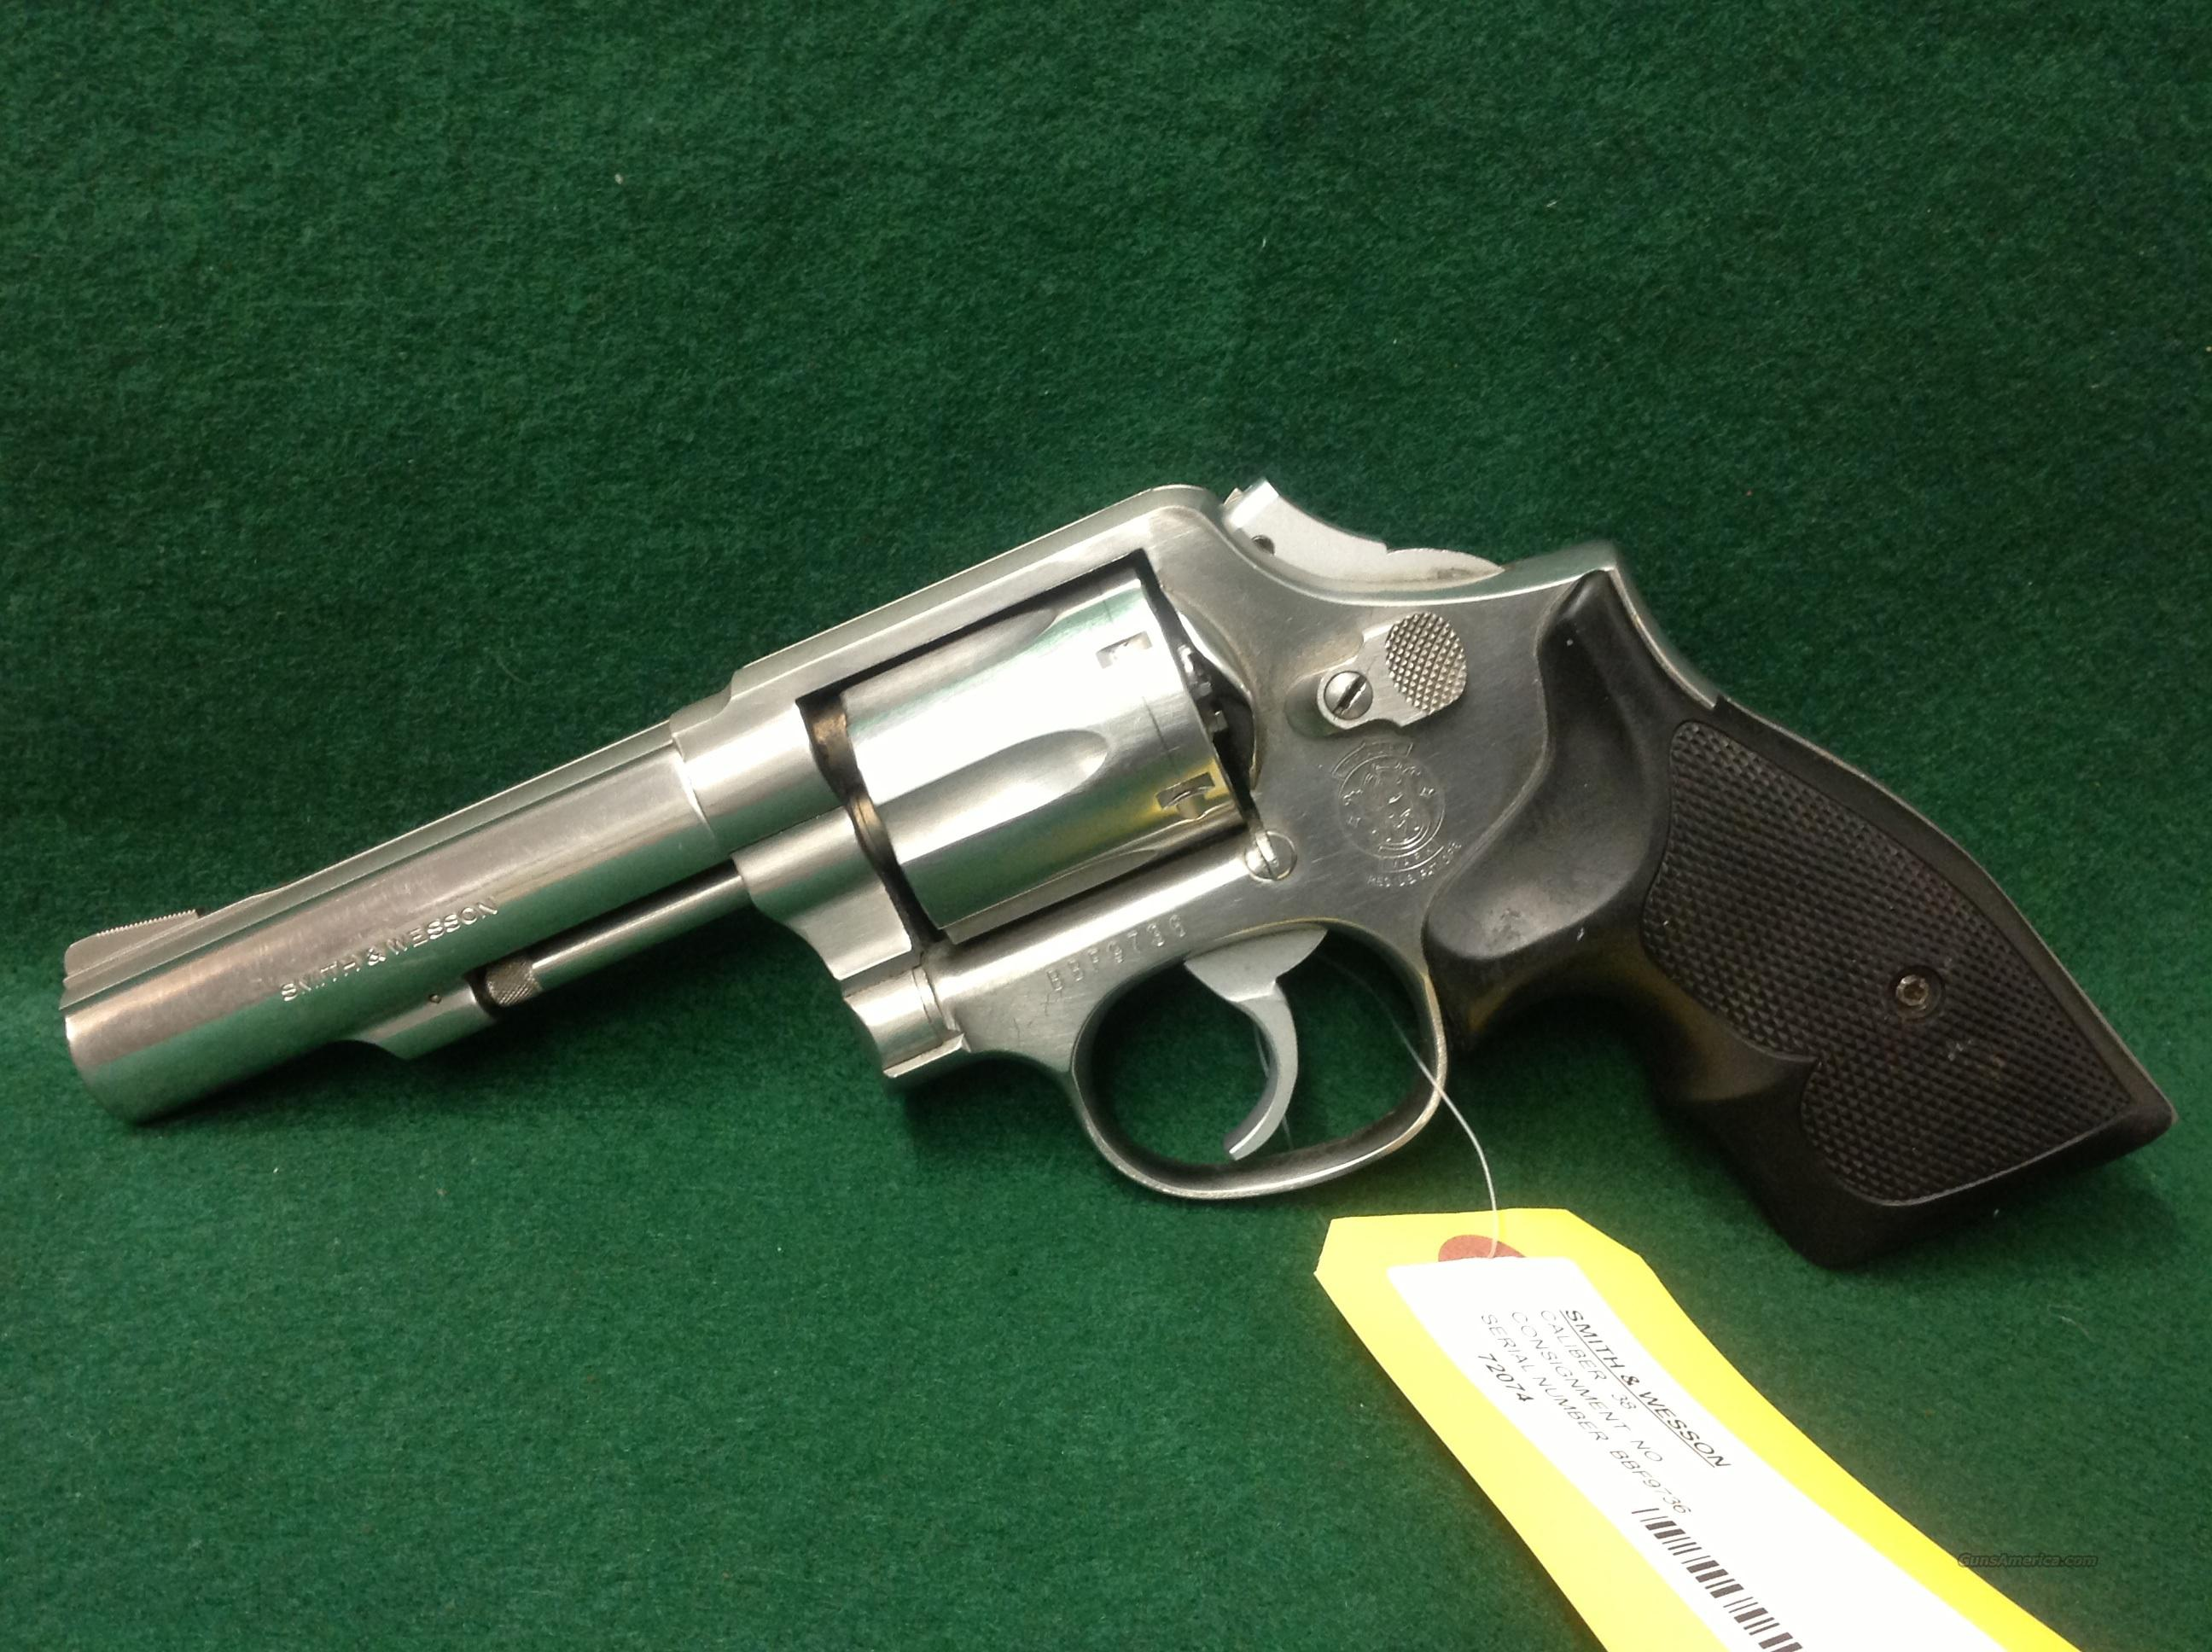 Smith & Wesson 64-5  Guns > Pistols > Smith & Wesson Revolvers > Full Frame Revolver